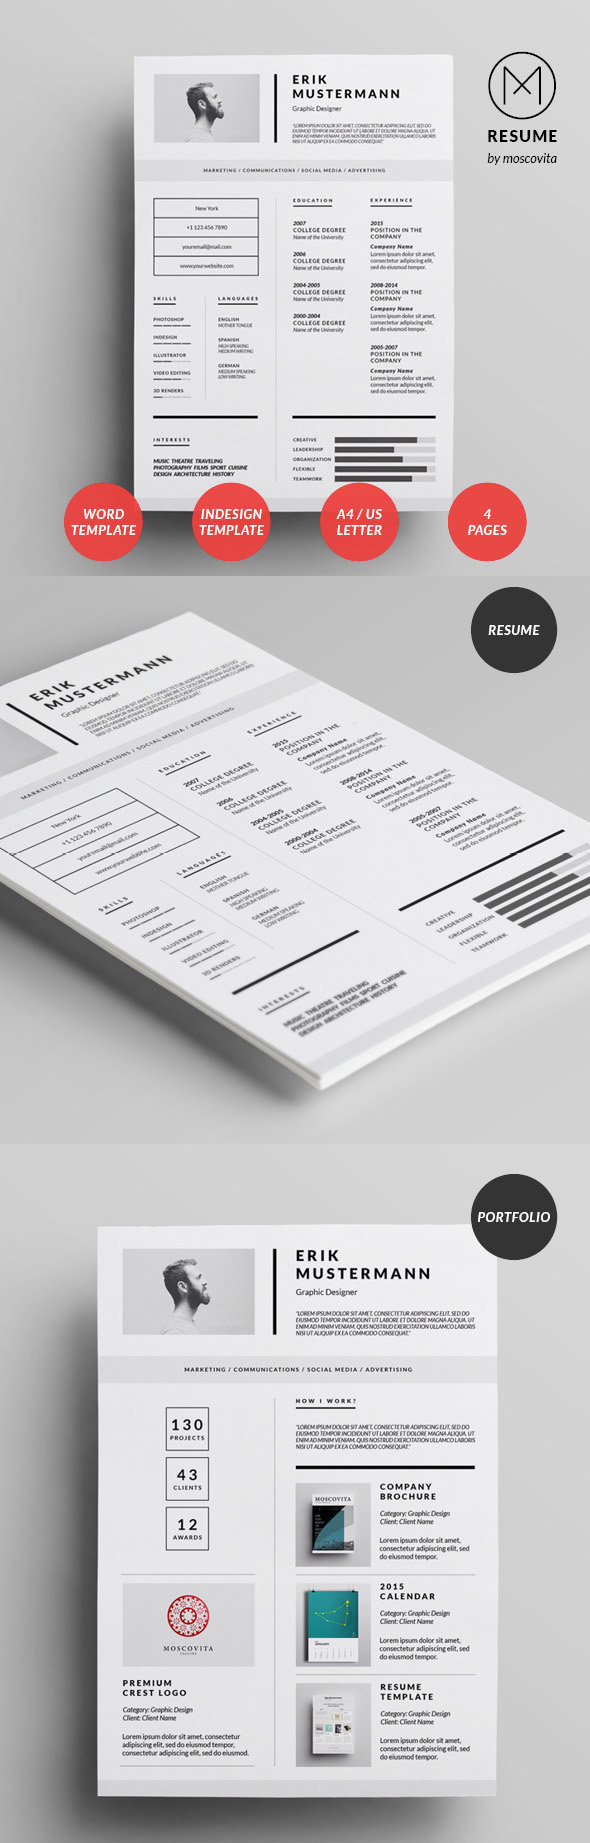 Creative Cv  Resume Templates With Cover Letter  Portfolio Page